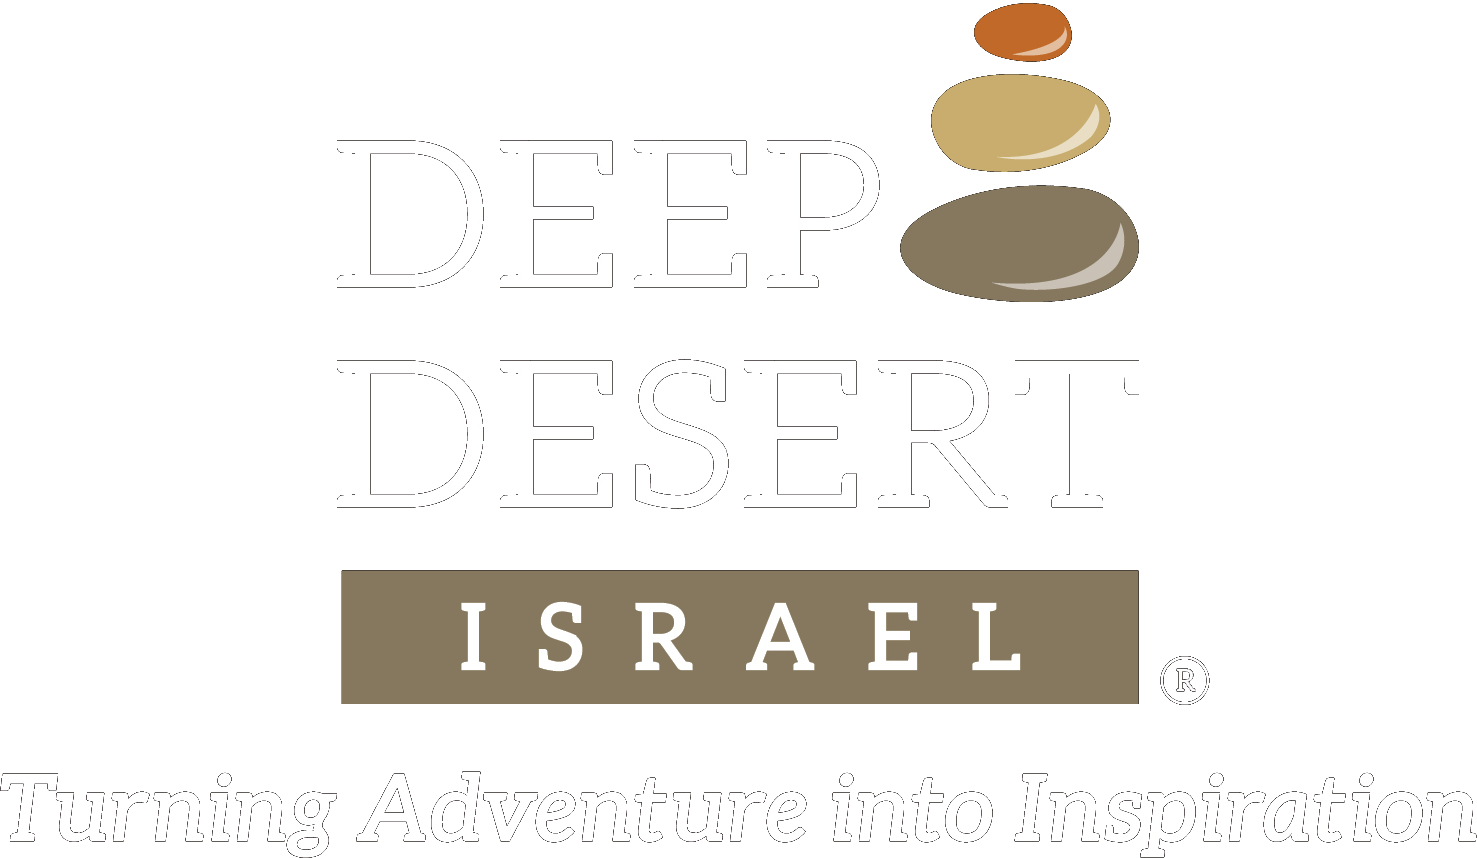 Deep Desert Israel - Turning Adventure into Inspiration